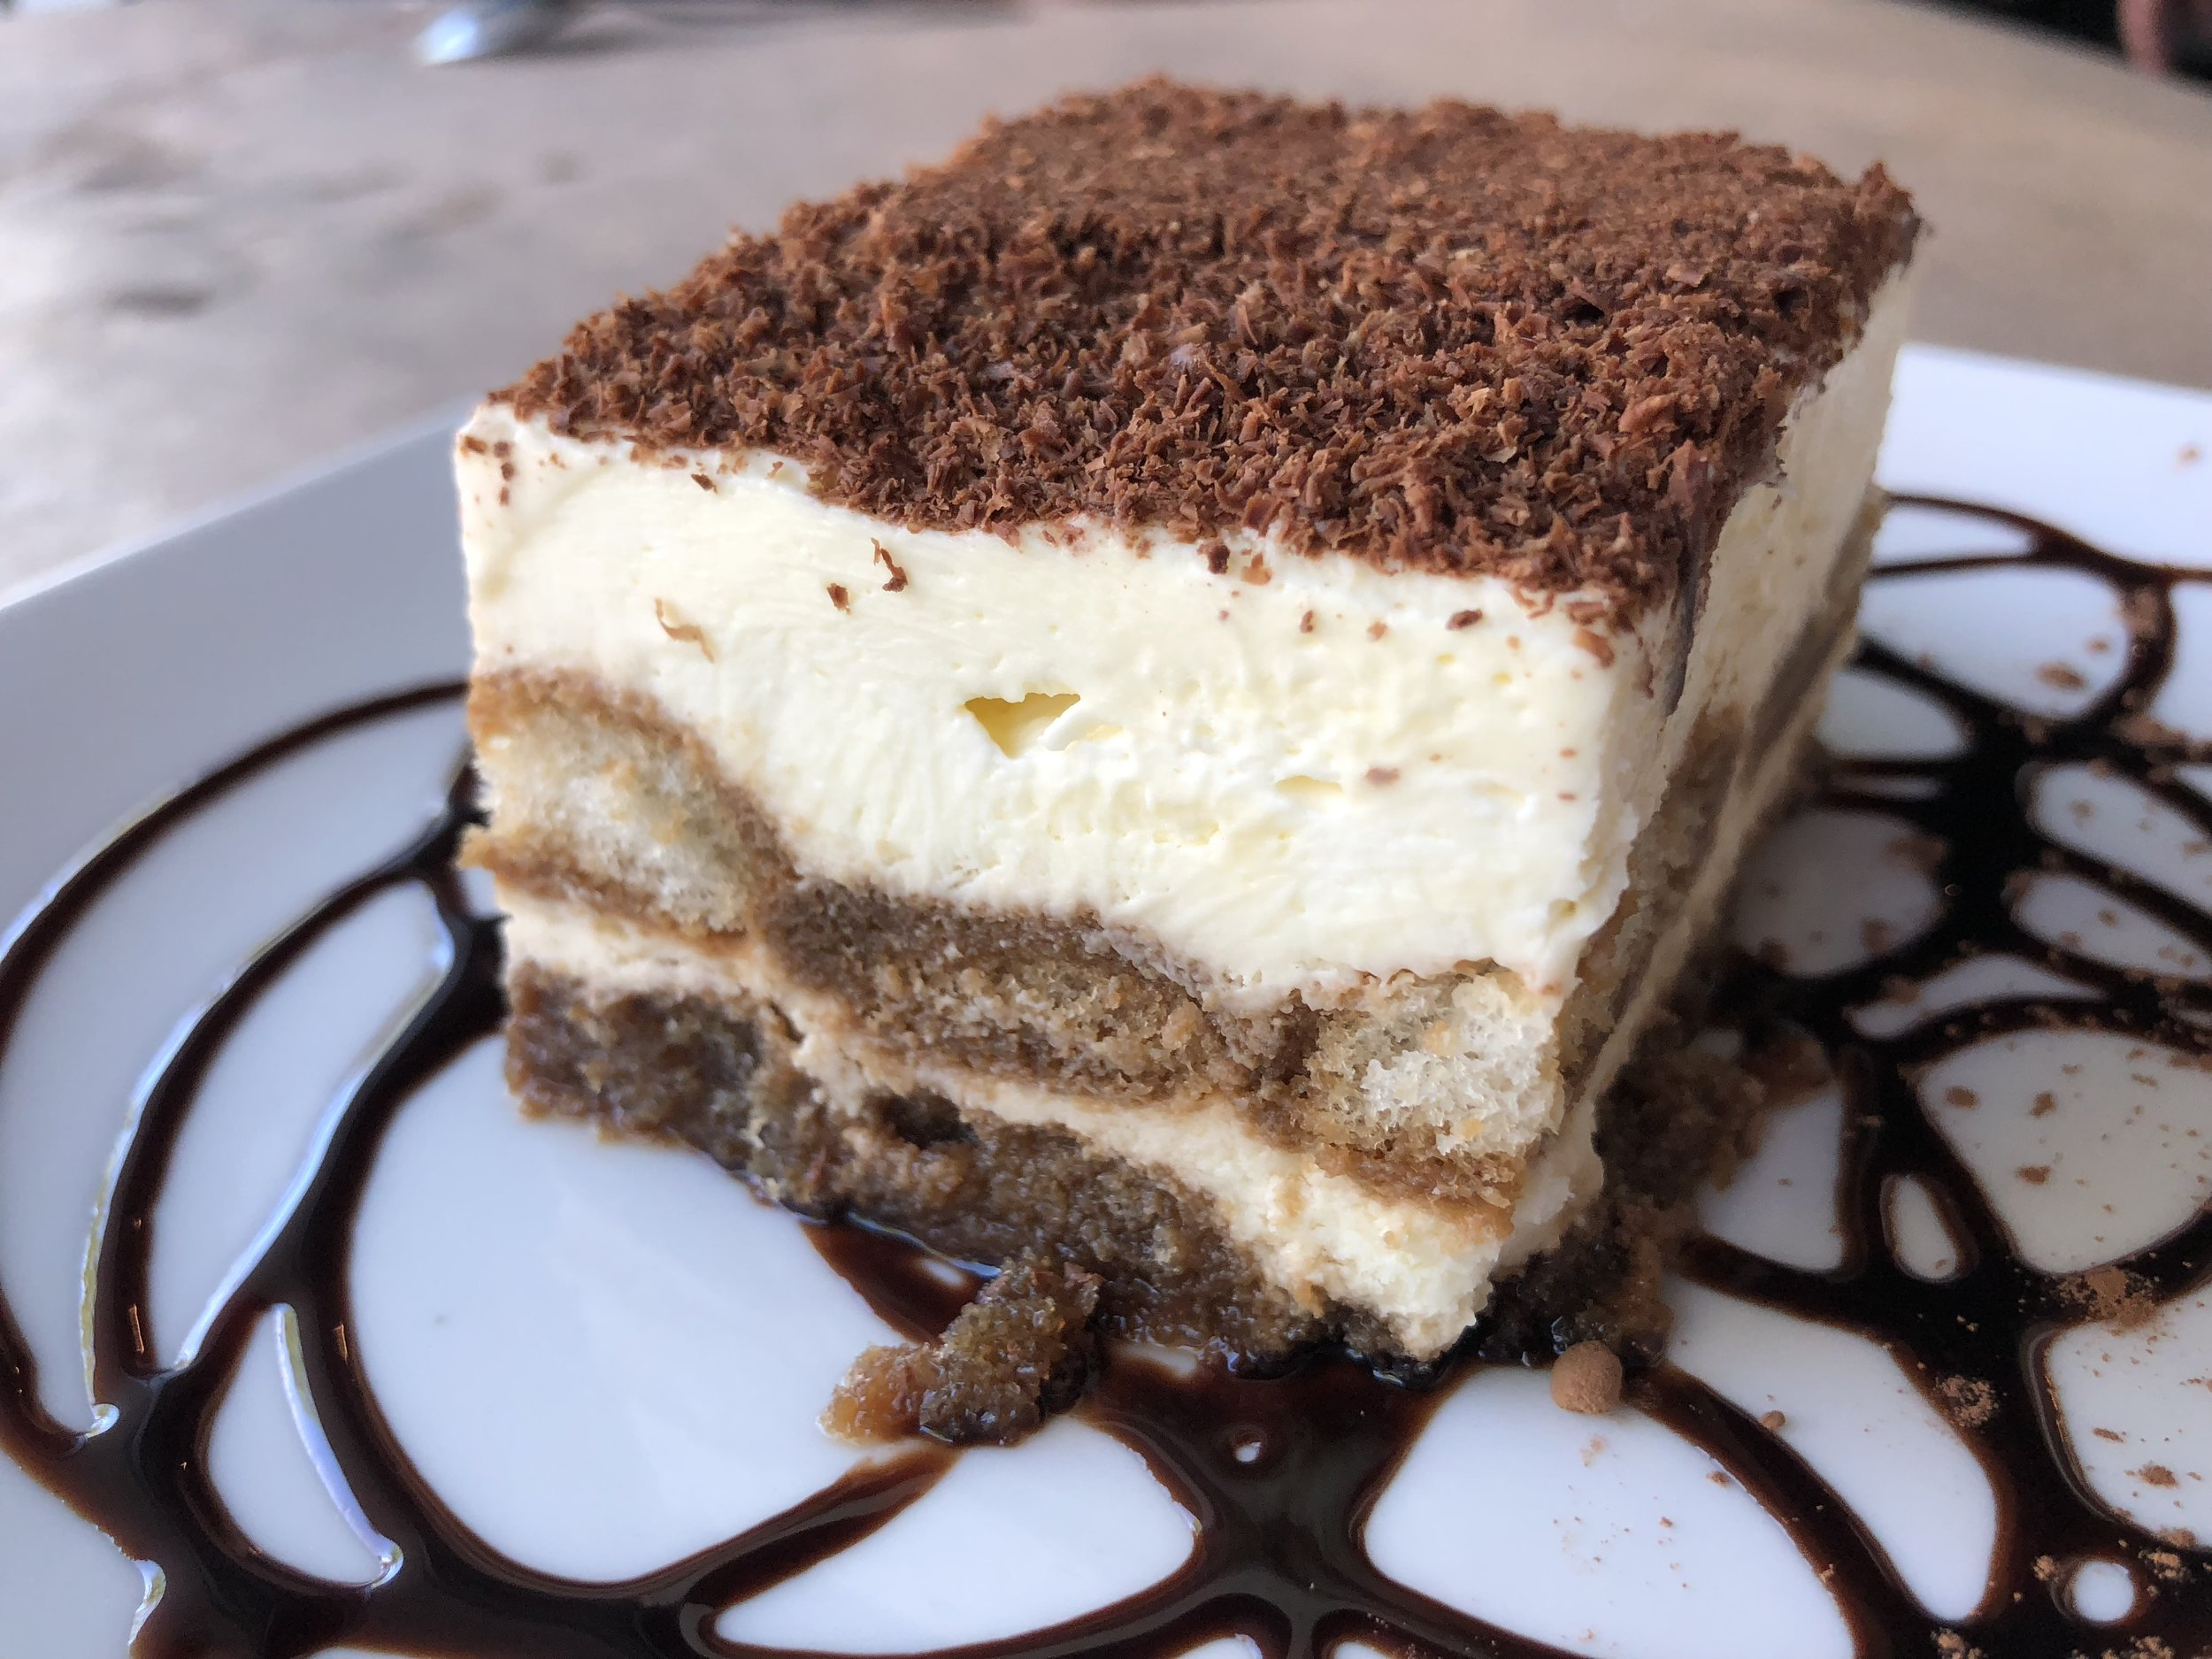 House-made Tiramisu - as fluffy as a cloud